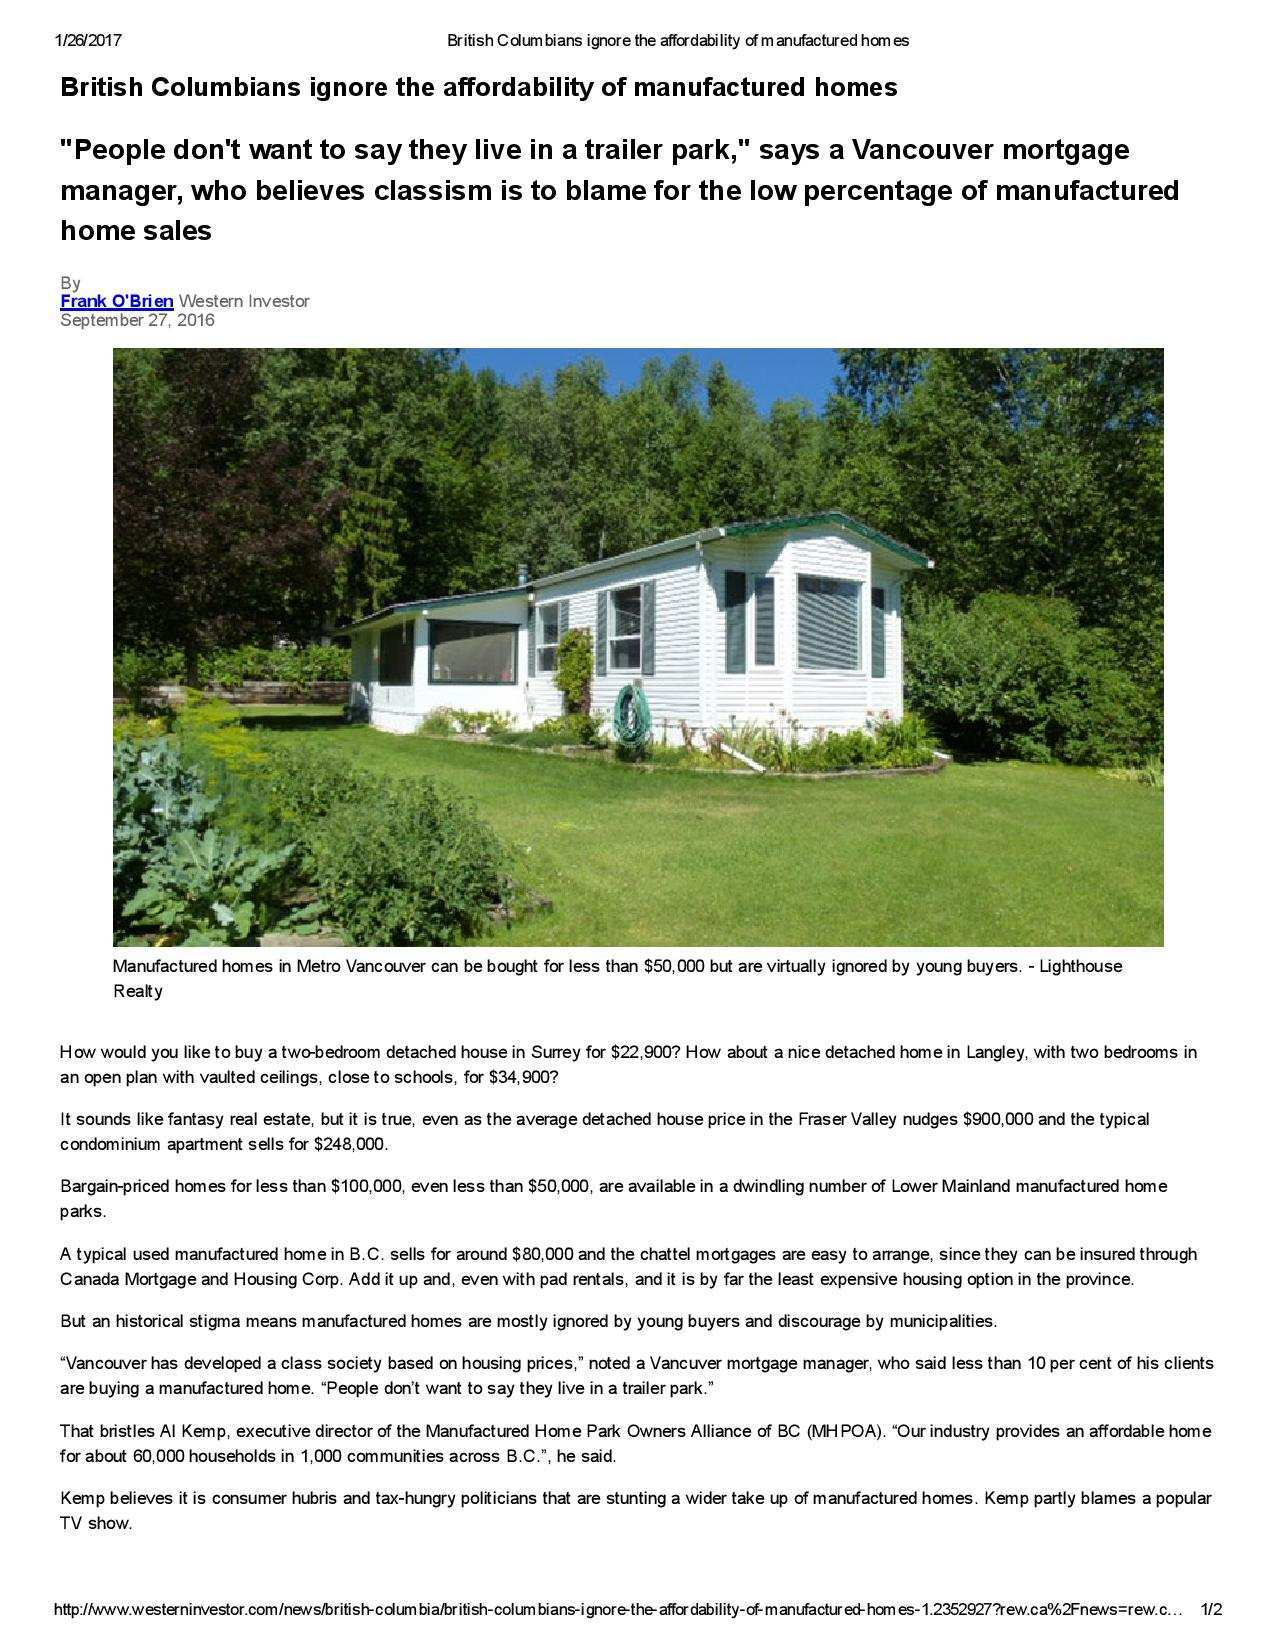 British Columbians ignore the affordability of manufactured homes